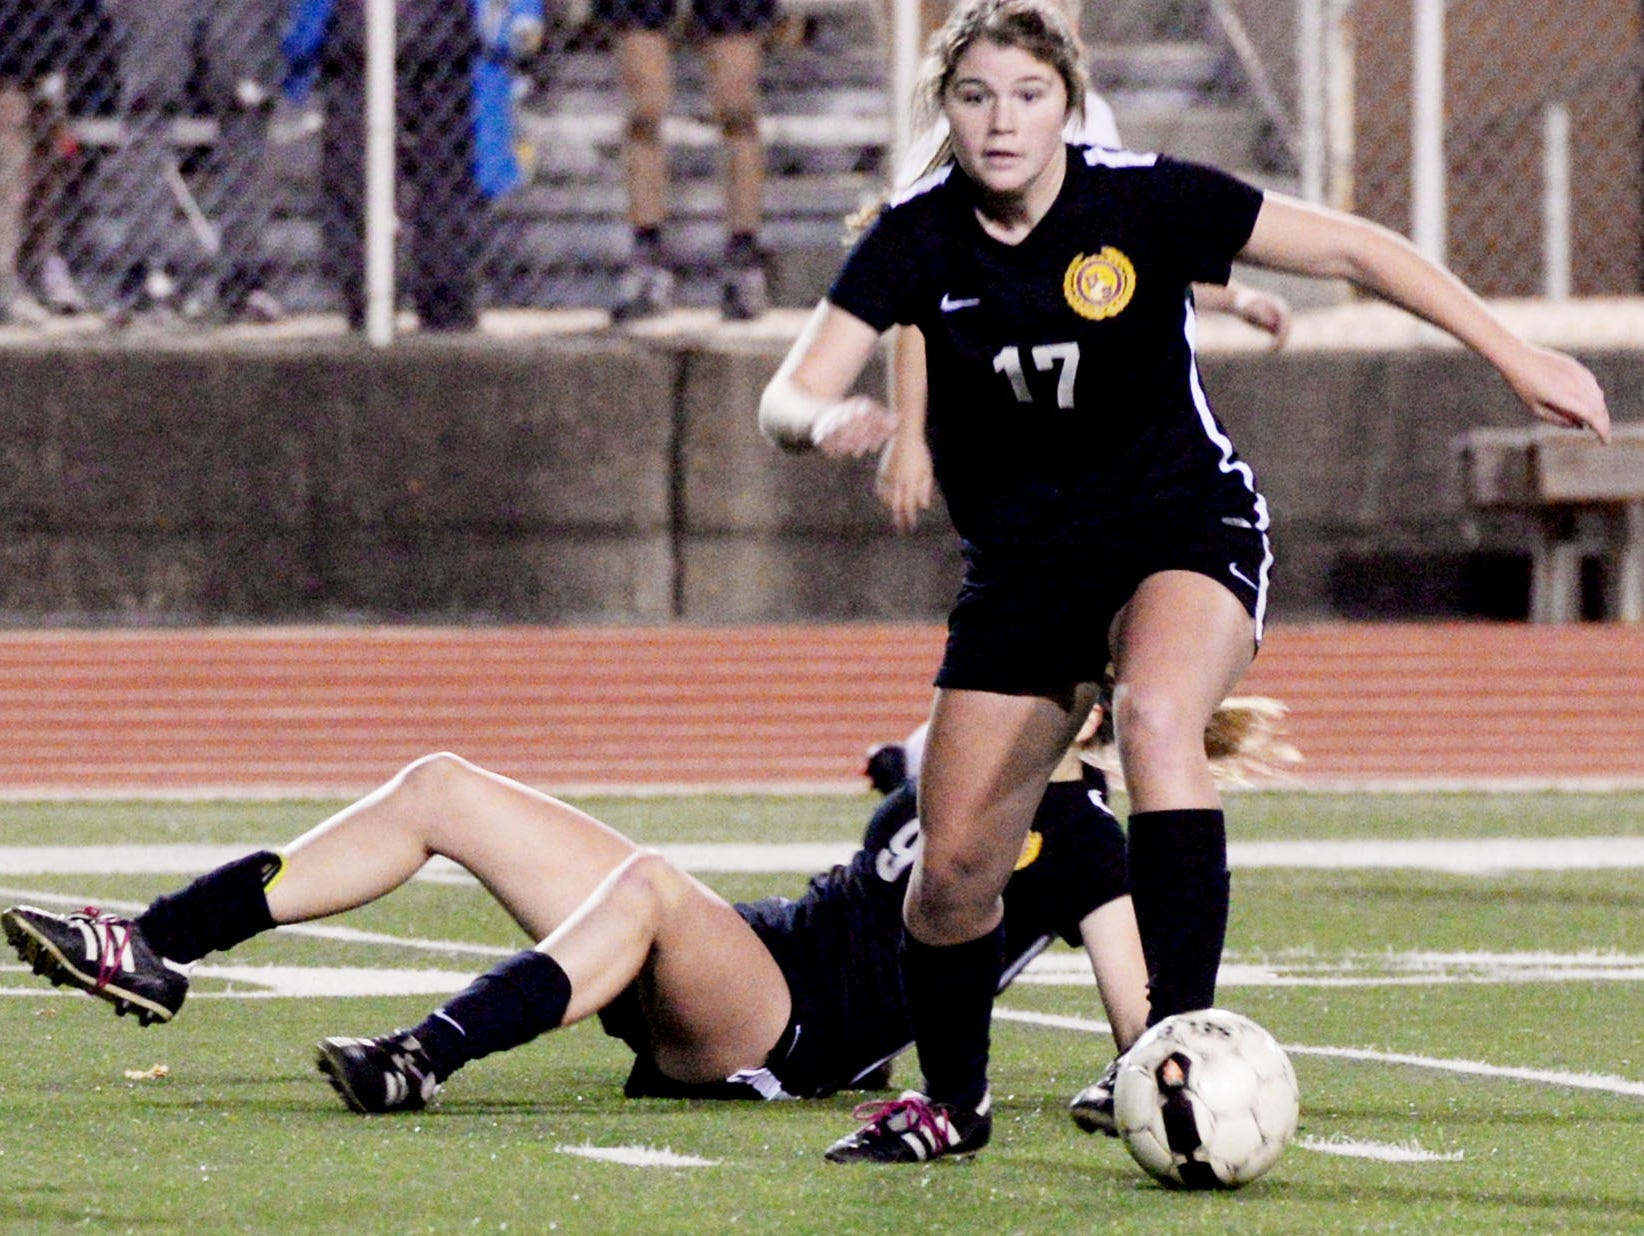 Caddo Magnet vs. Byrd soccer Monday evening at Lee Hedges Stadium.